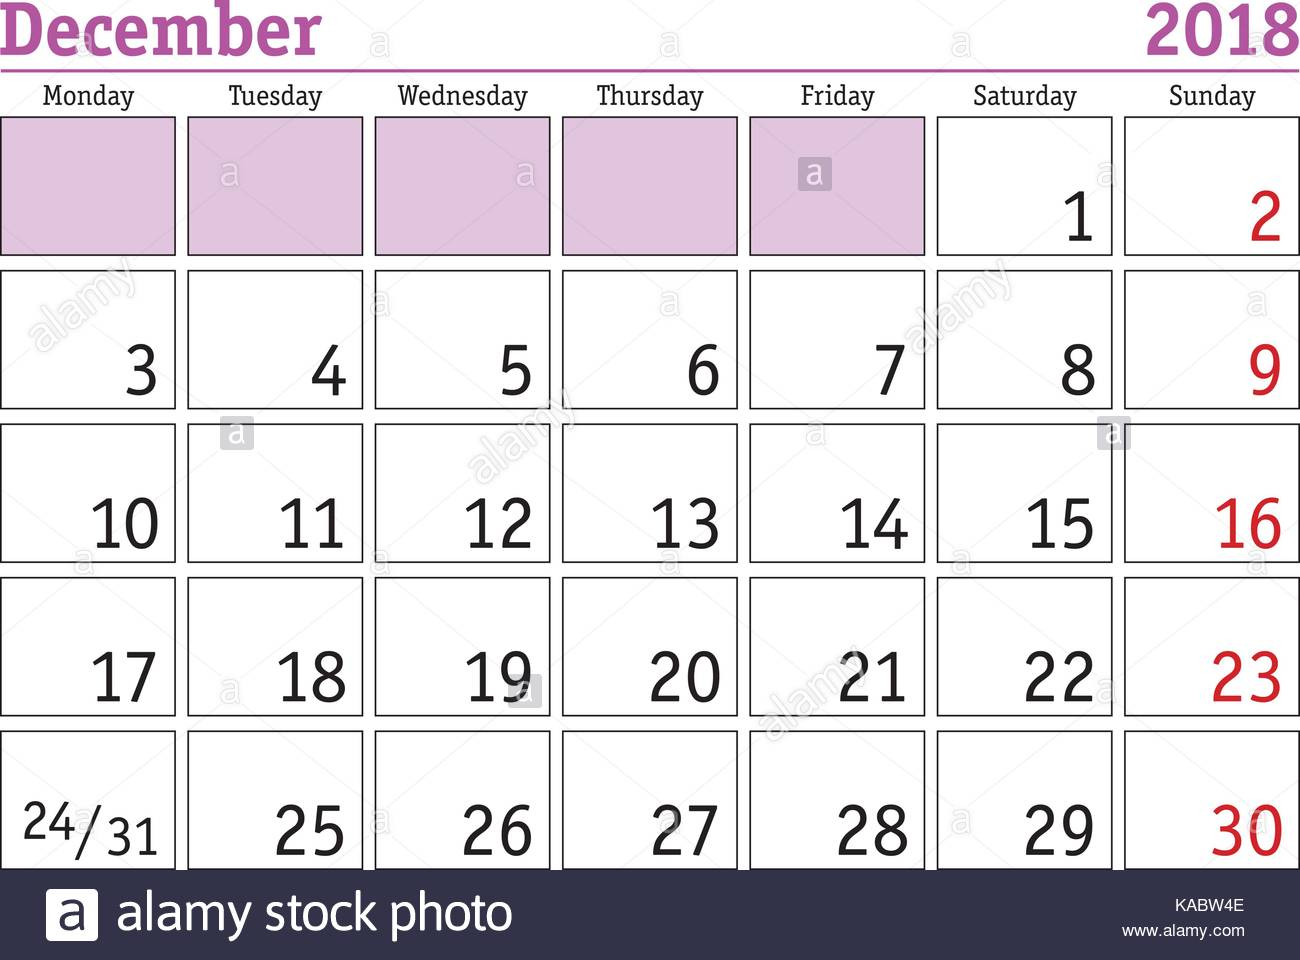 December Calendar Art : Simple digital calendar for december vector printable